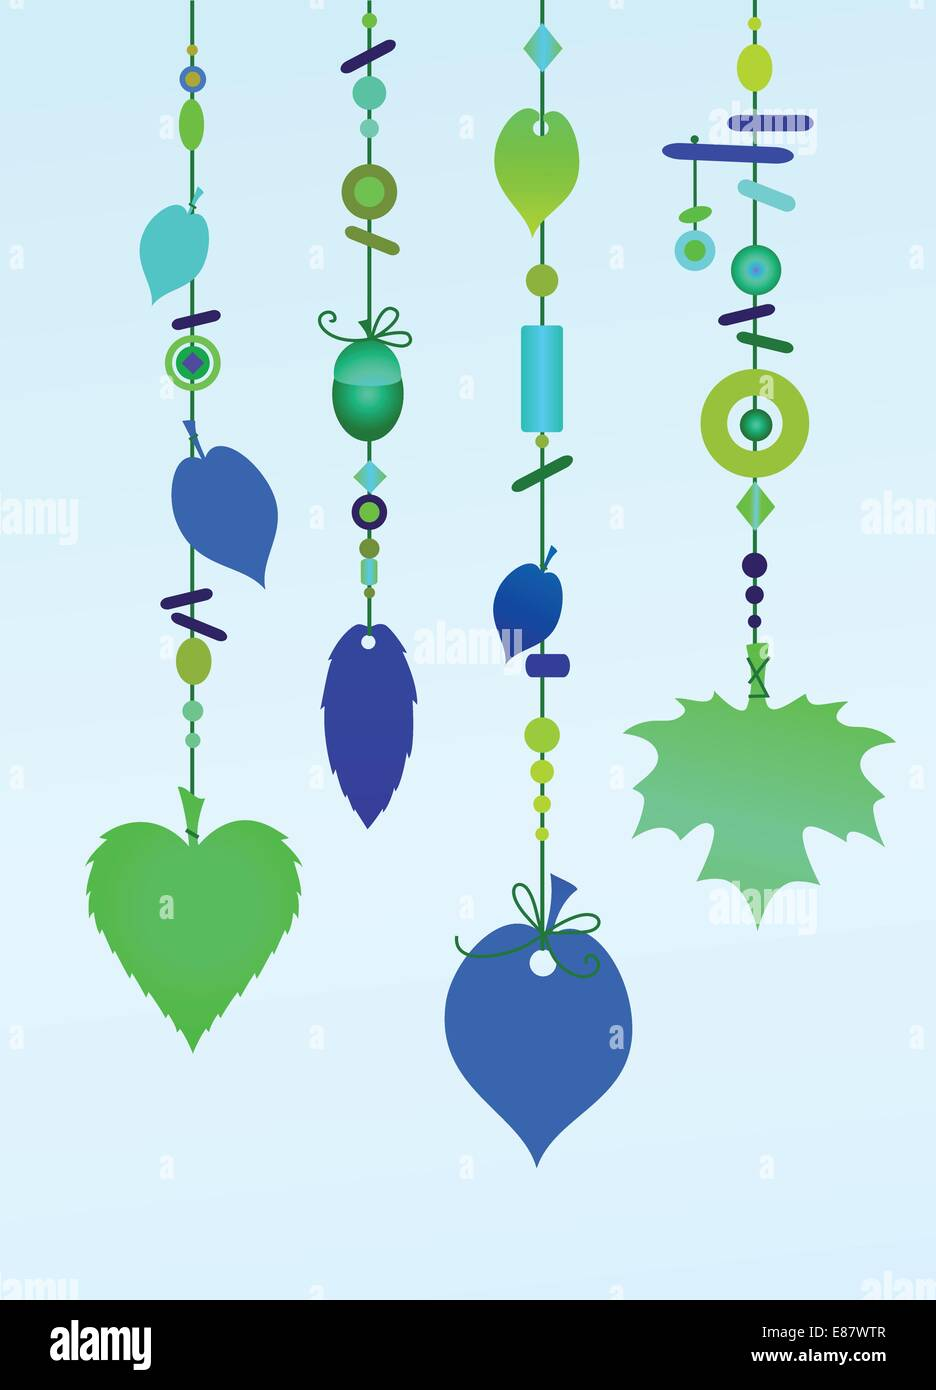 Vector Illustration Of Decorative Wind Chimes With Floral Leaf Shape